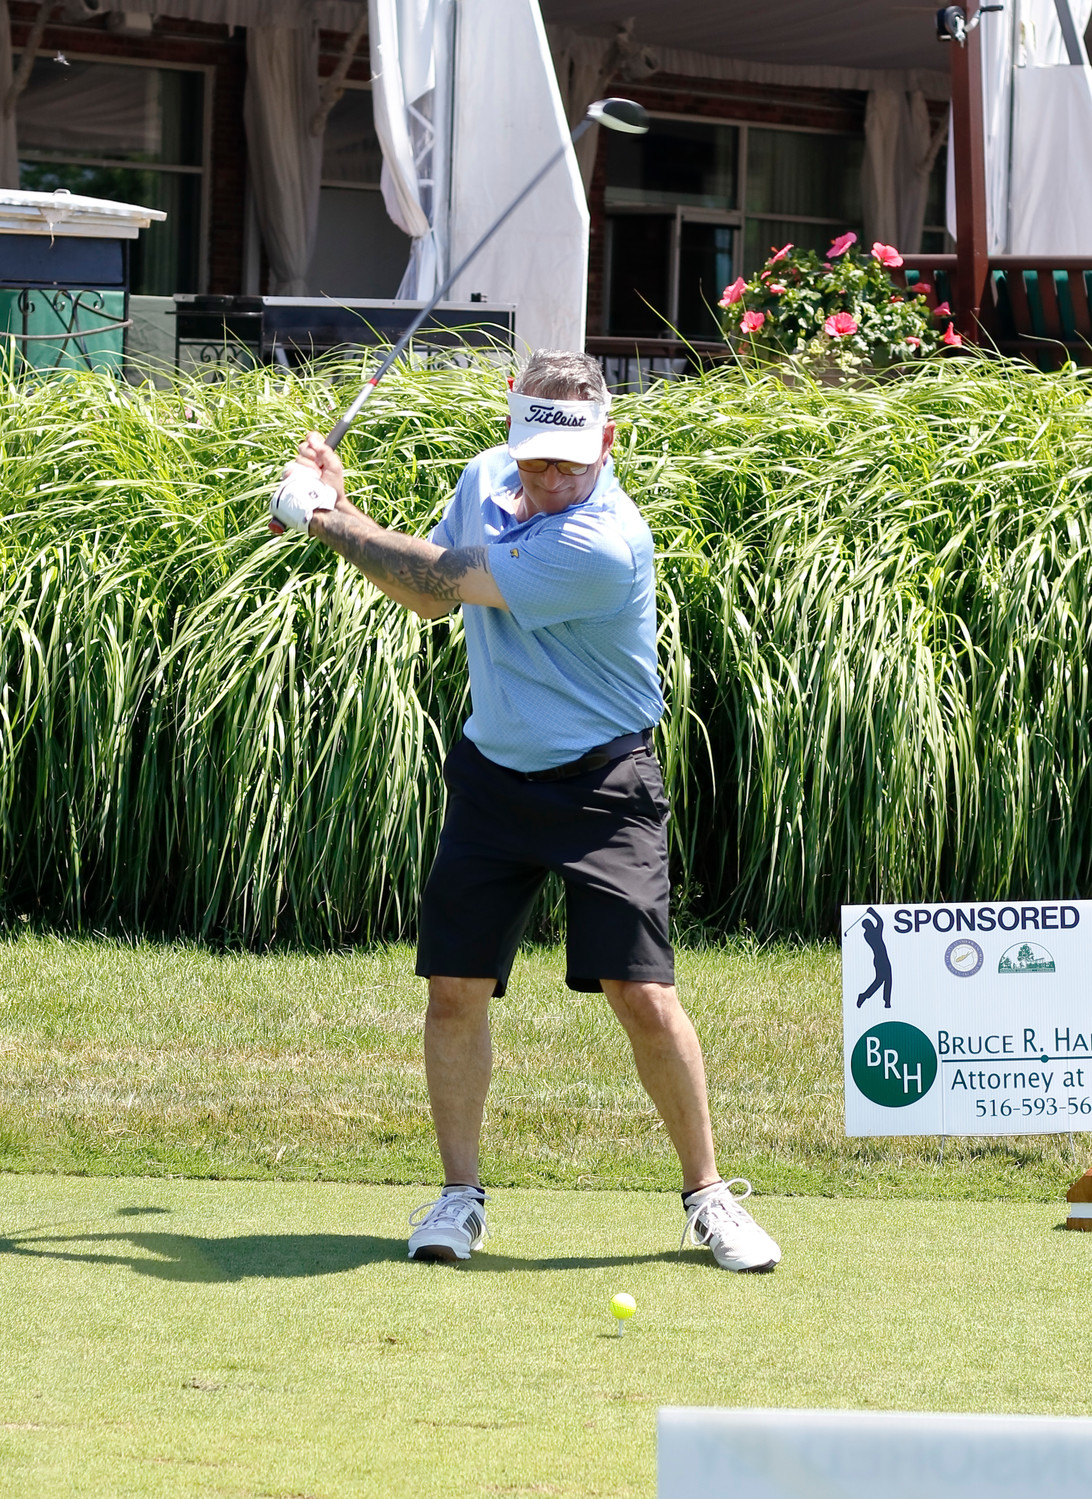 John Bua teed off at the first hole of the annual Mayor's Golf Outing on Monday at the Seawane Club in Hewlett Harbor. The event benefited former Lynbrook Police Inspector Ronald Fleury, who is battling amyotrophic lateral sclerosis.